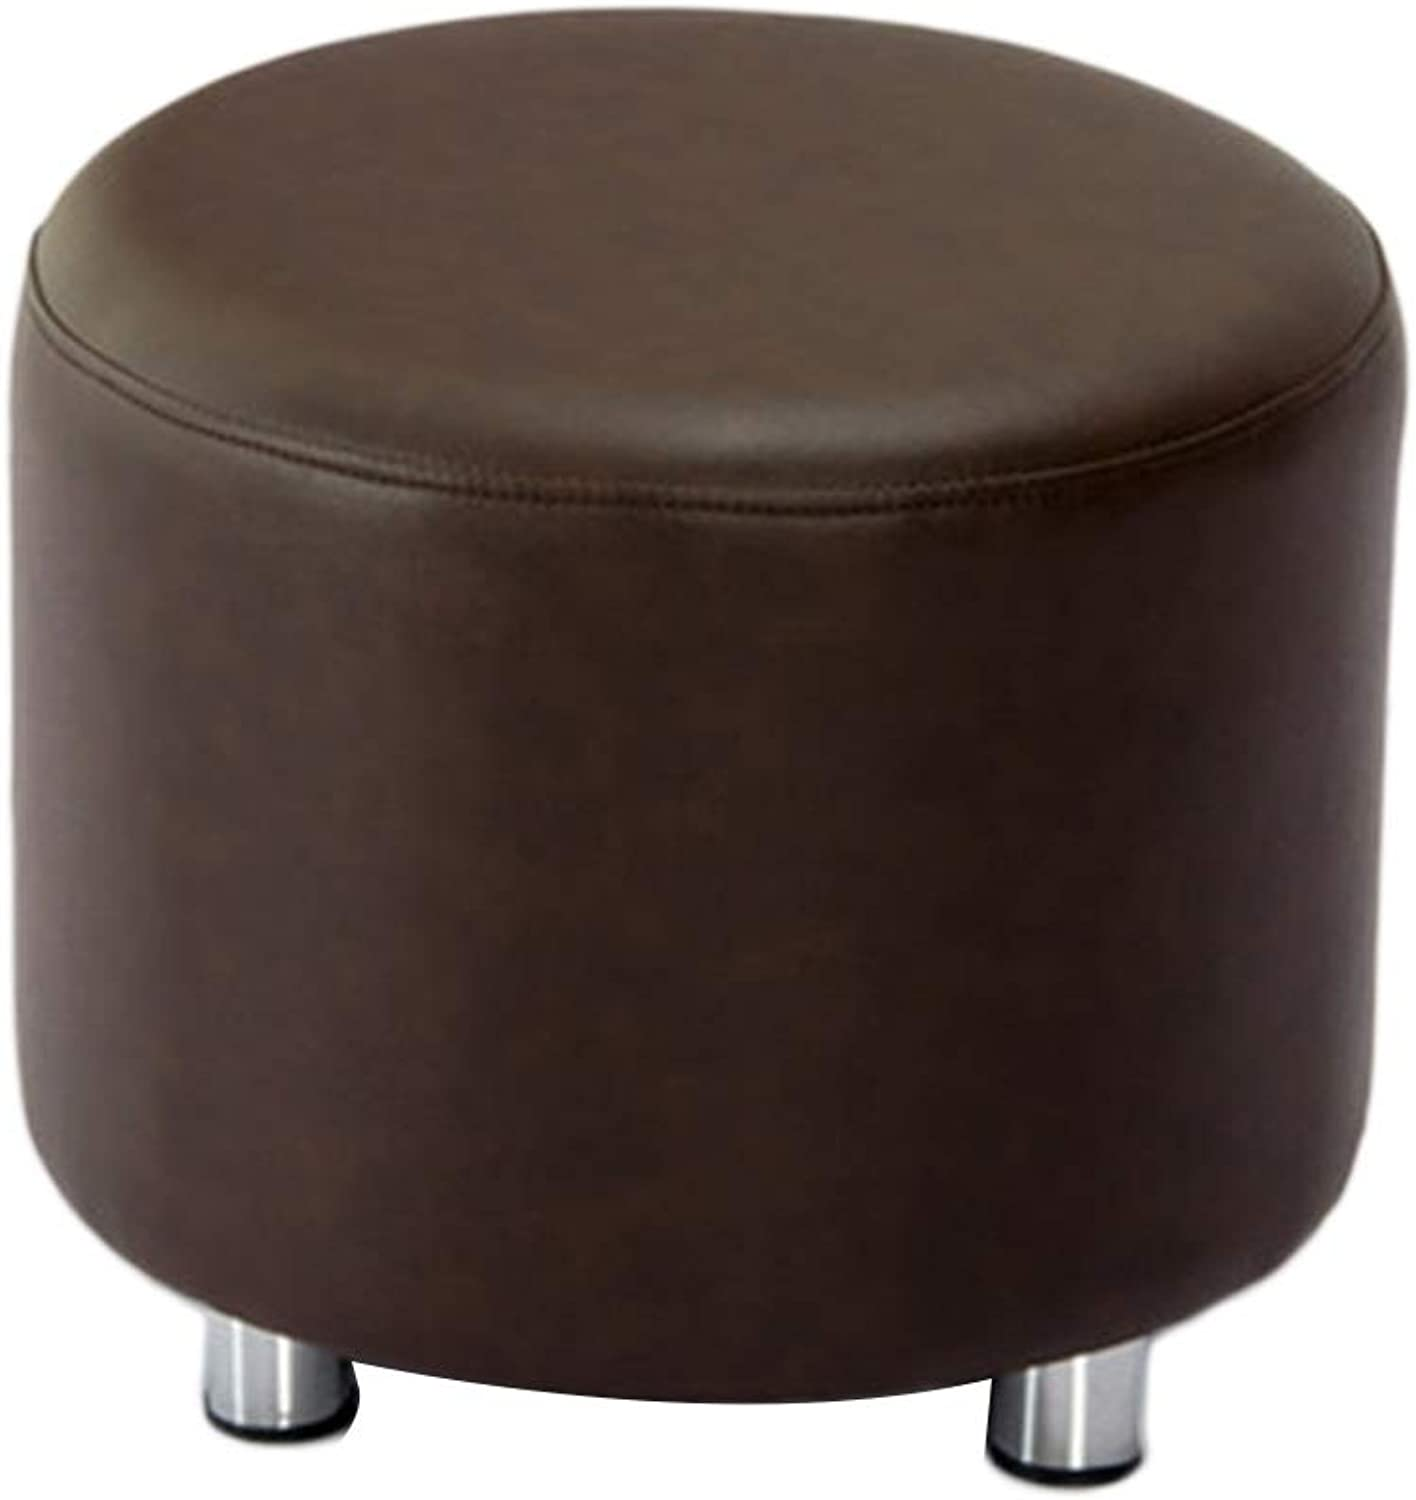 Stools Stool Bedroom Round Stool Test shoes Stool Living Room Sofa Stool Corridor Change shoes Stool Dressing Table Stool (color   H, Size   42  35cm)